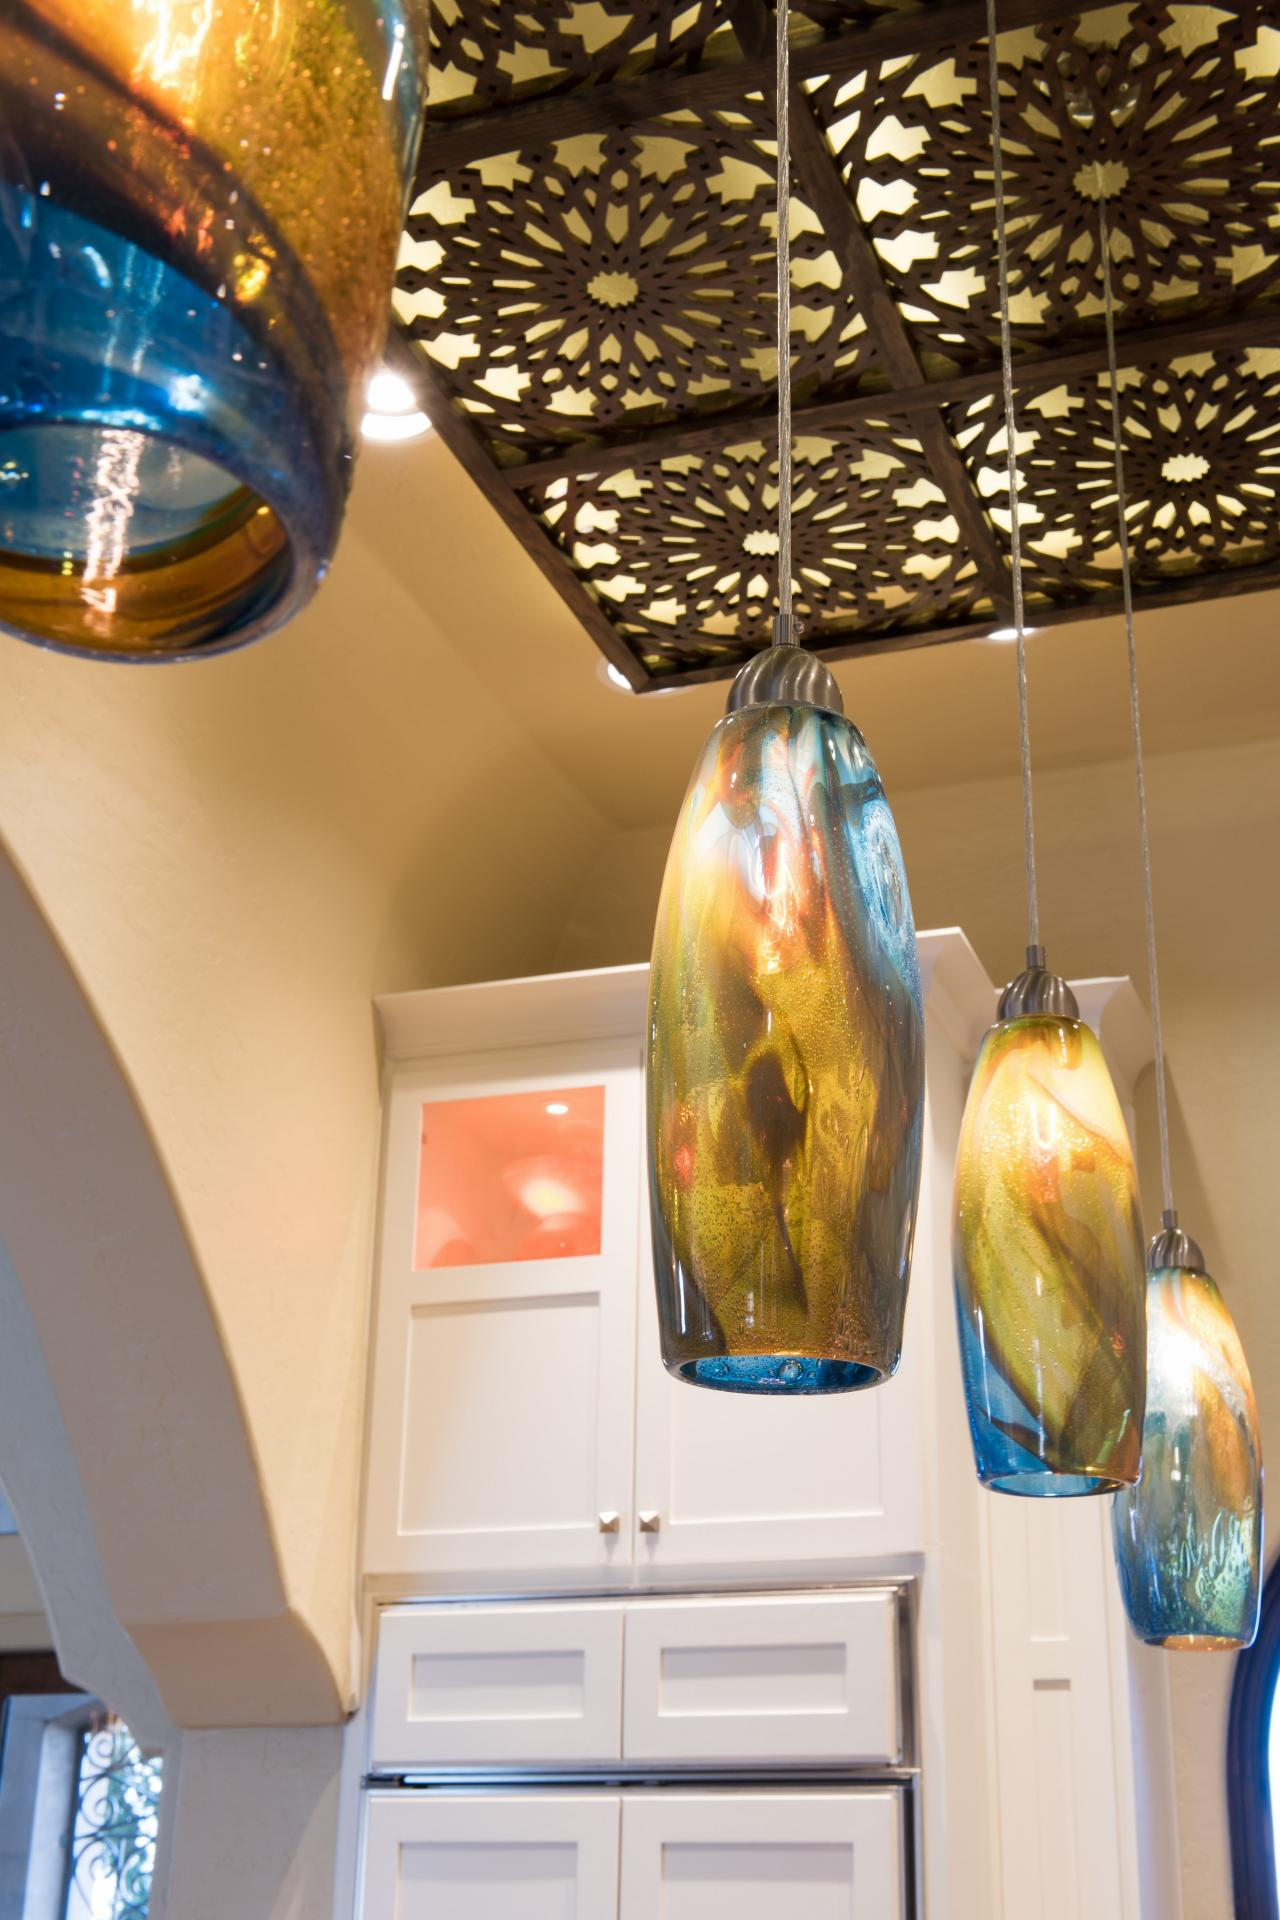 Ceiling Can Be Decorated With Decorative Ceiling Light